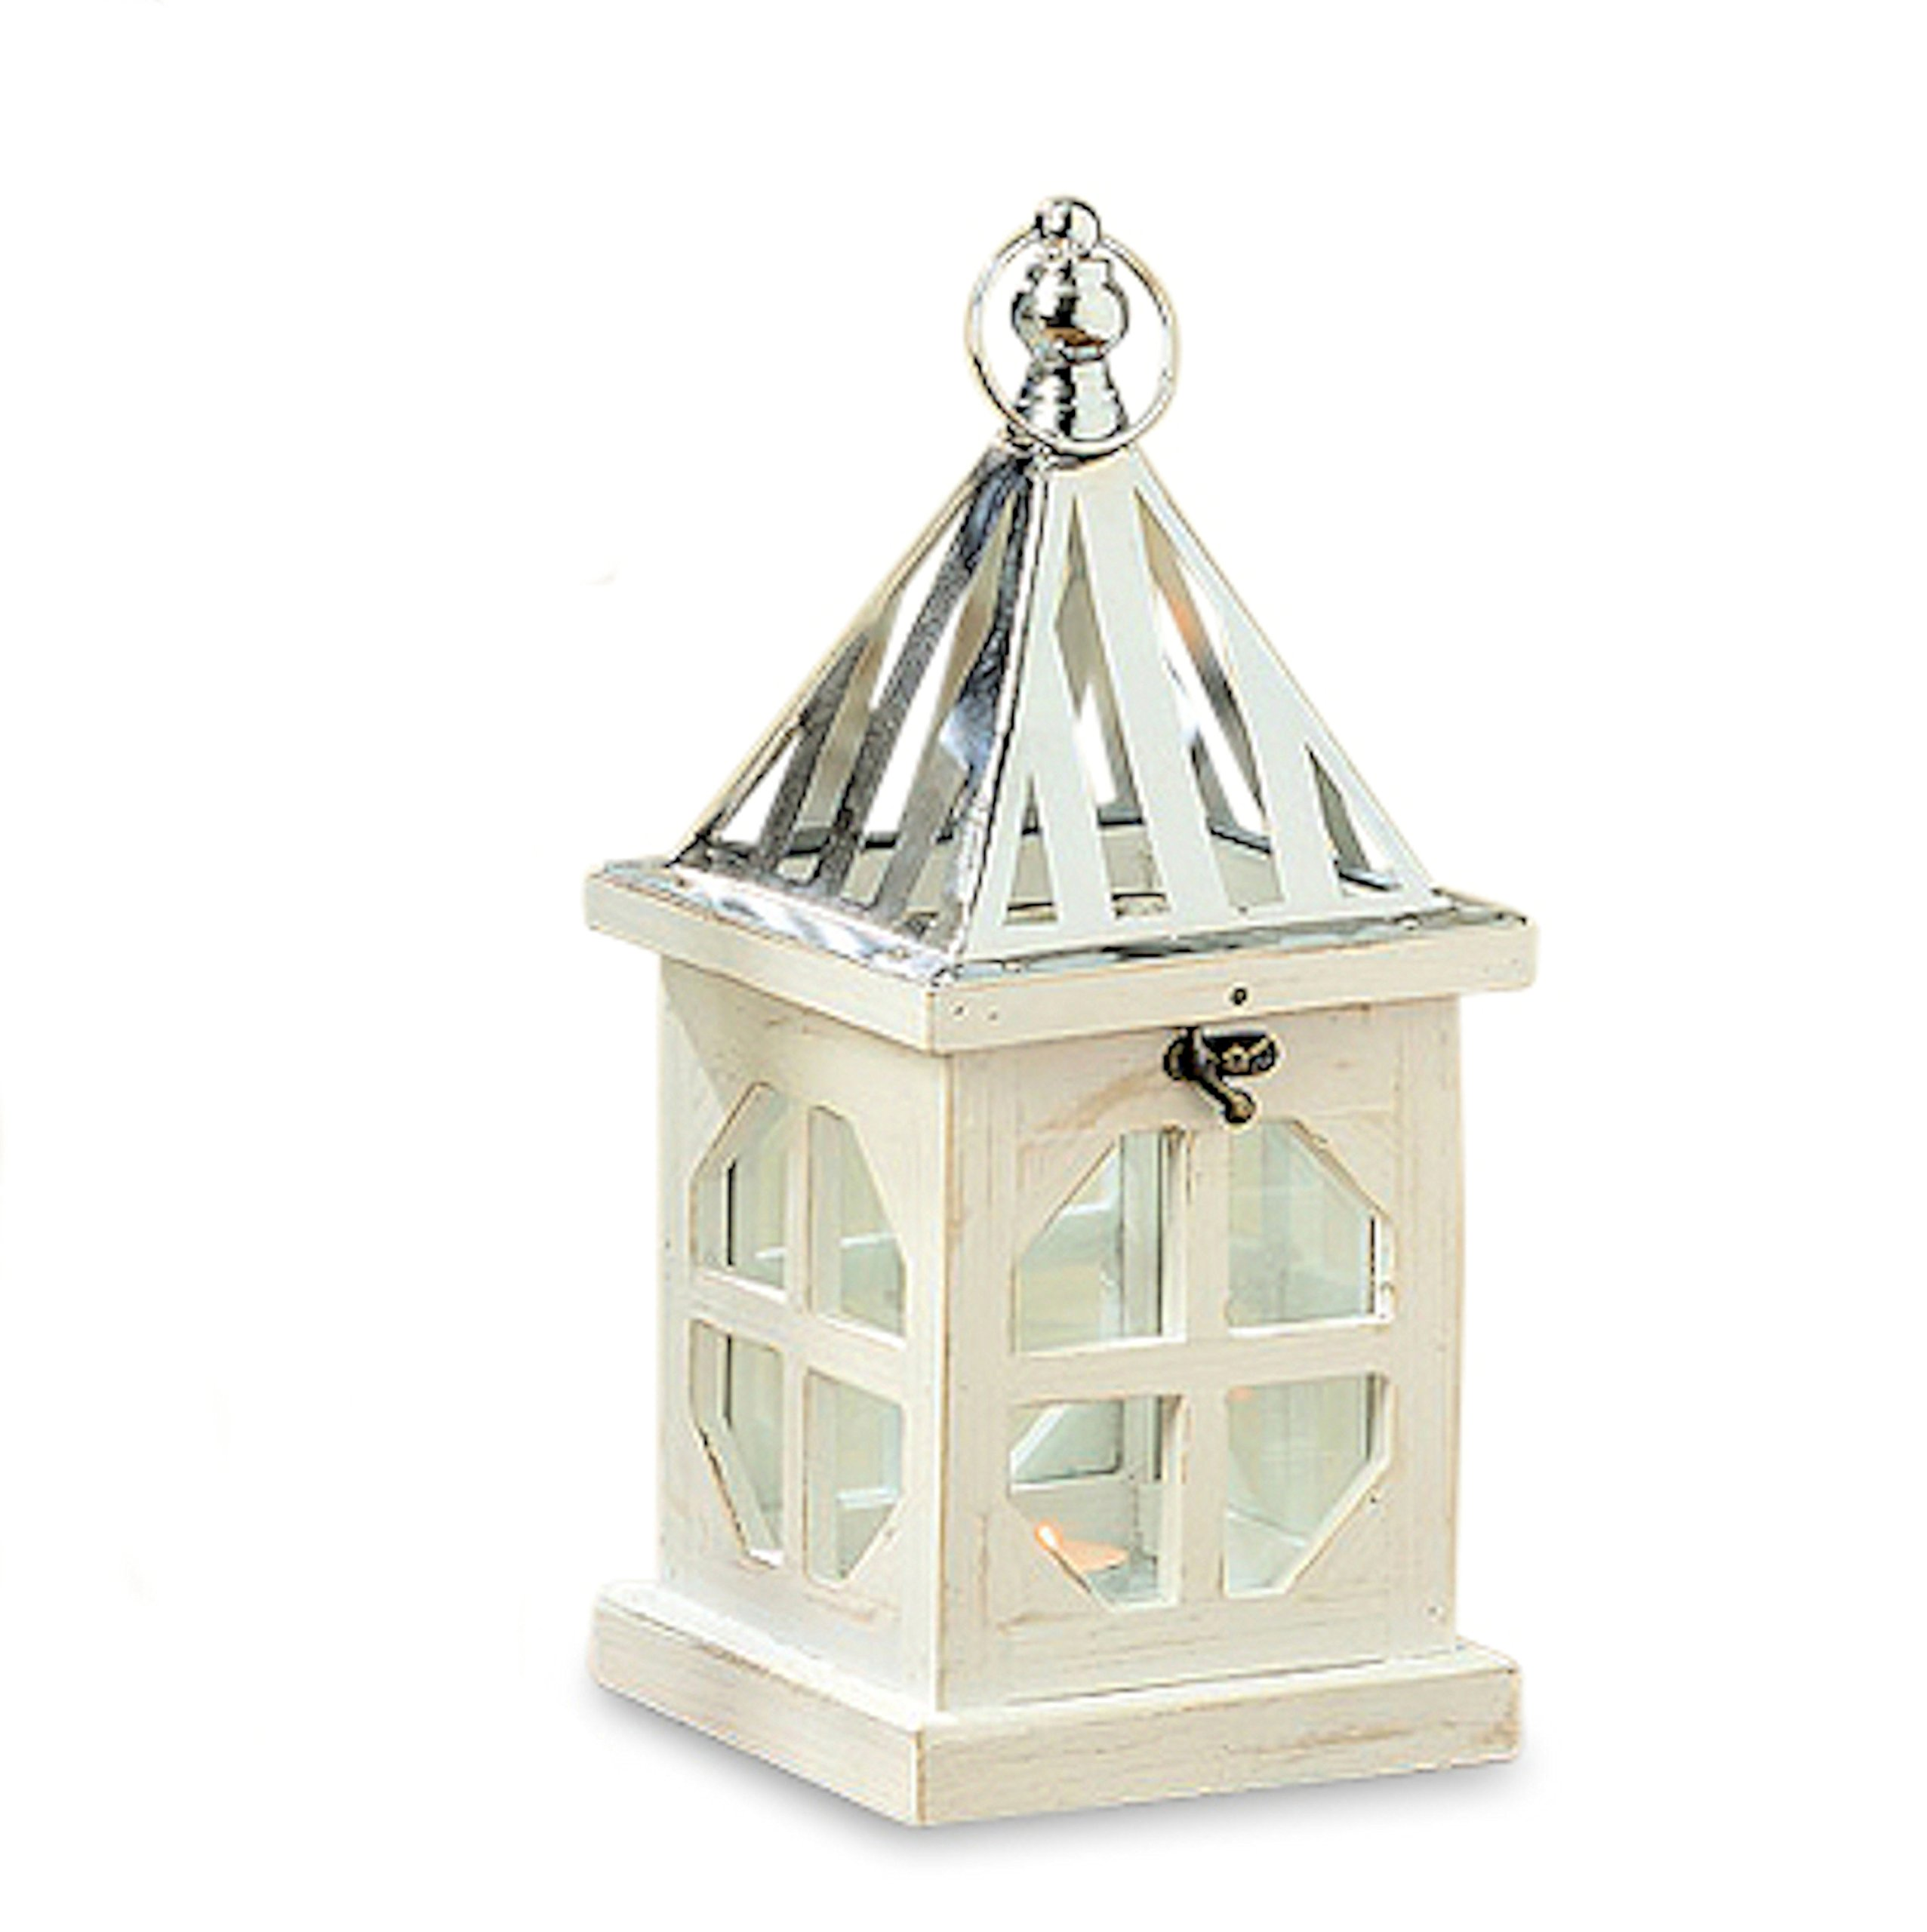 Whole House Worlds The Crosby Street Cross Post Candle Lantern, Silver Metal Slated Roof, Top Opening, Swing Latch, Hanging Loop, Solid Wood Construction, Glass, 13 Inches Tall, By